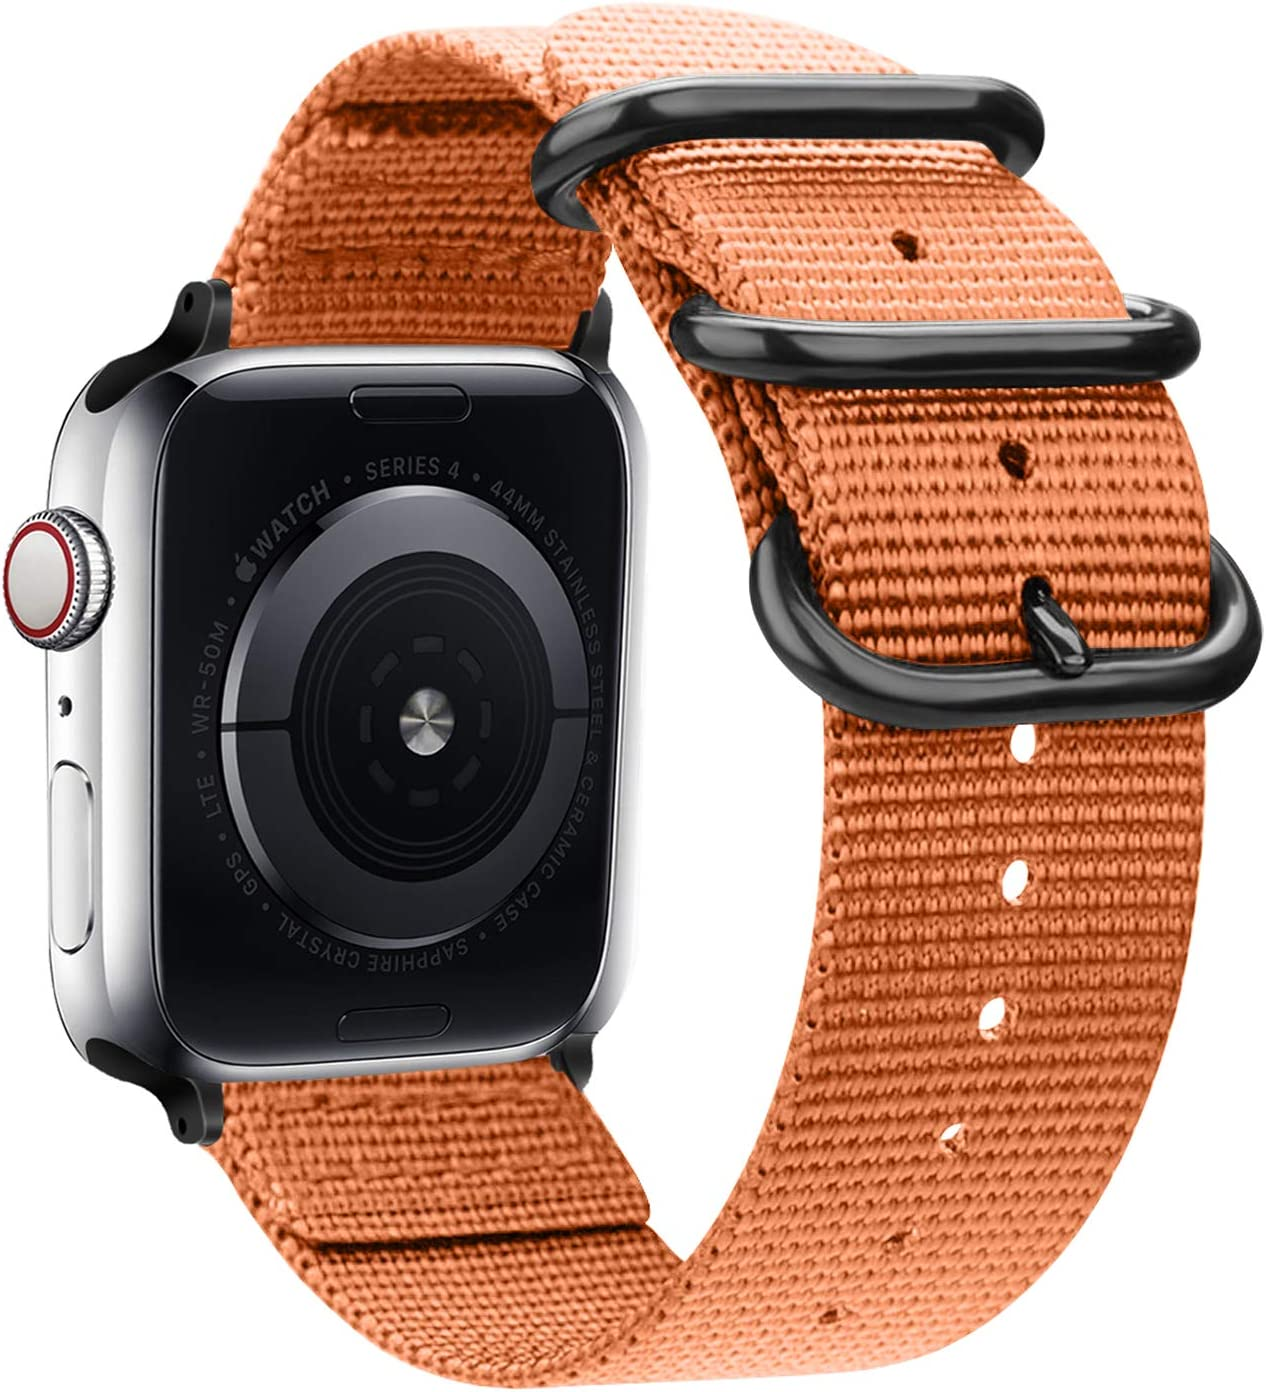 Misker nylon Band Compatible with Apple Watch Band 44mm 42mm 40mm 38mm, Lightweight Breathable Sport Wrist Strap with Metal Buckle Compatible with iwatch series 5/4/3/2/1 (Apricot orange, 42mm/44mm)